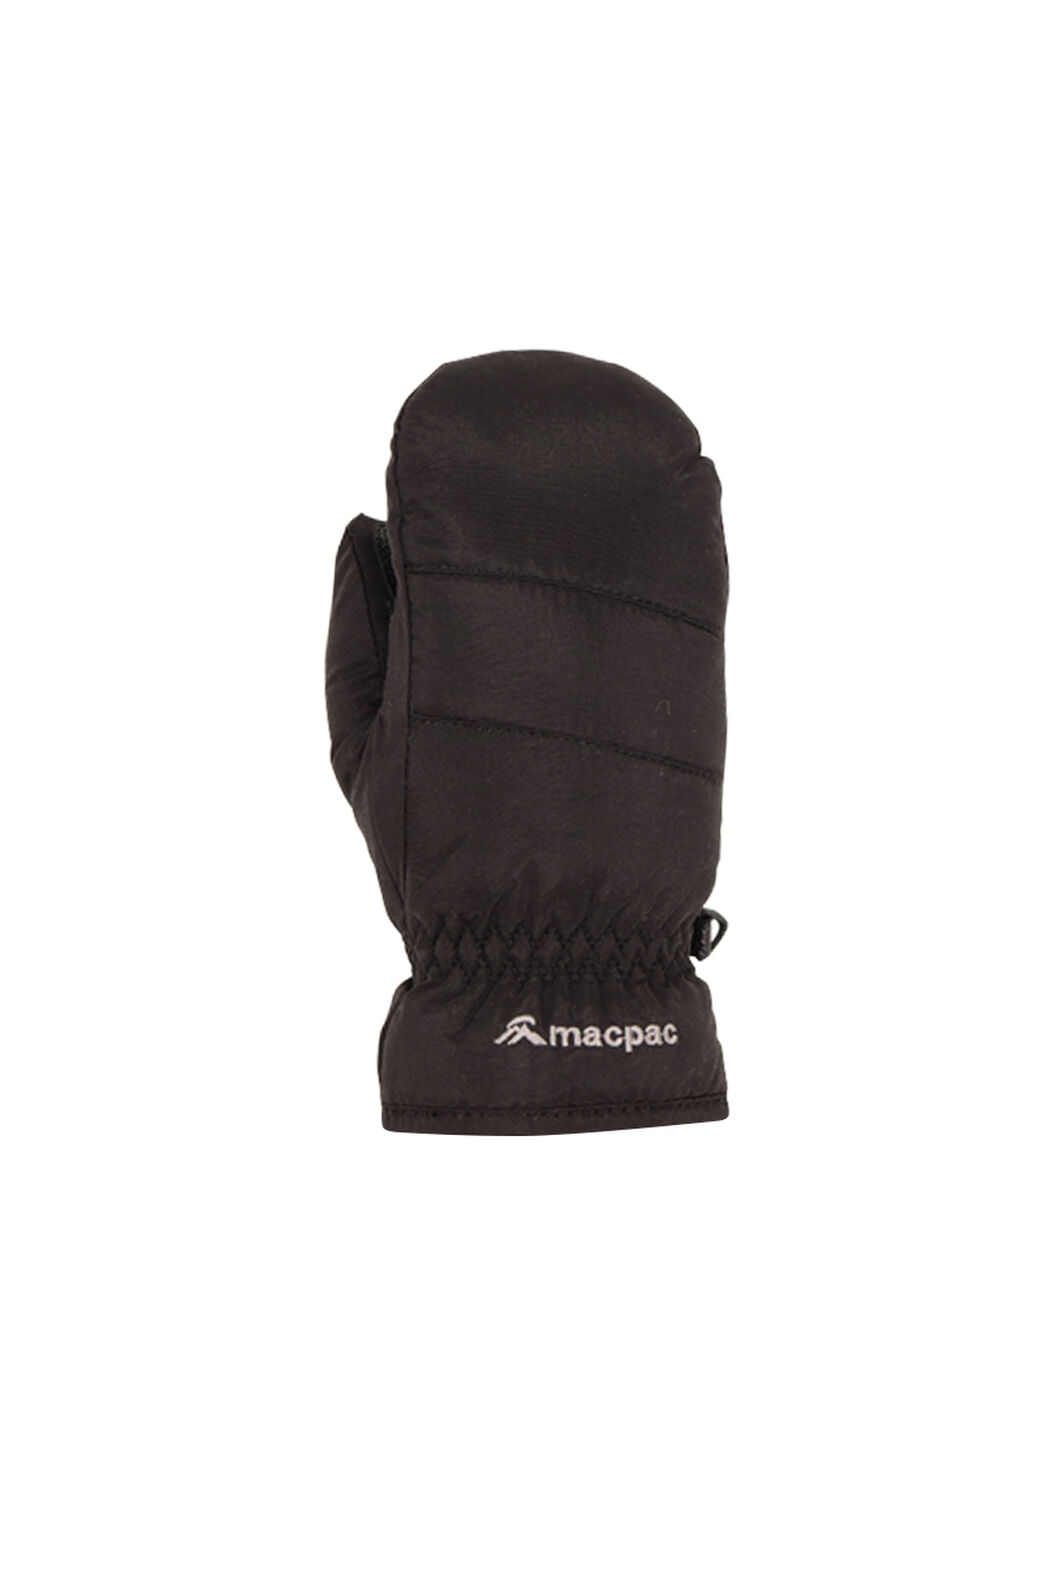 Macpac Mitts — Kids', Black, hi-res